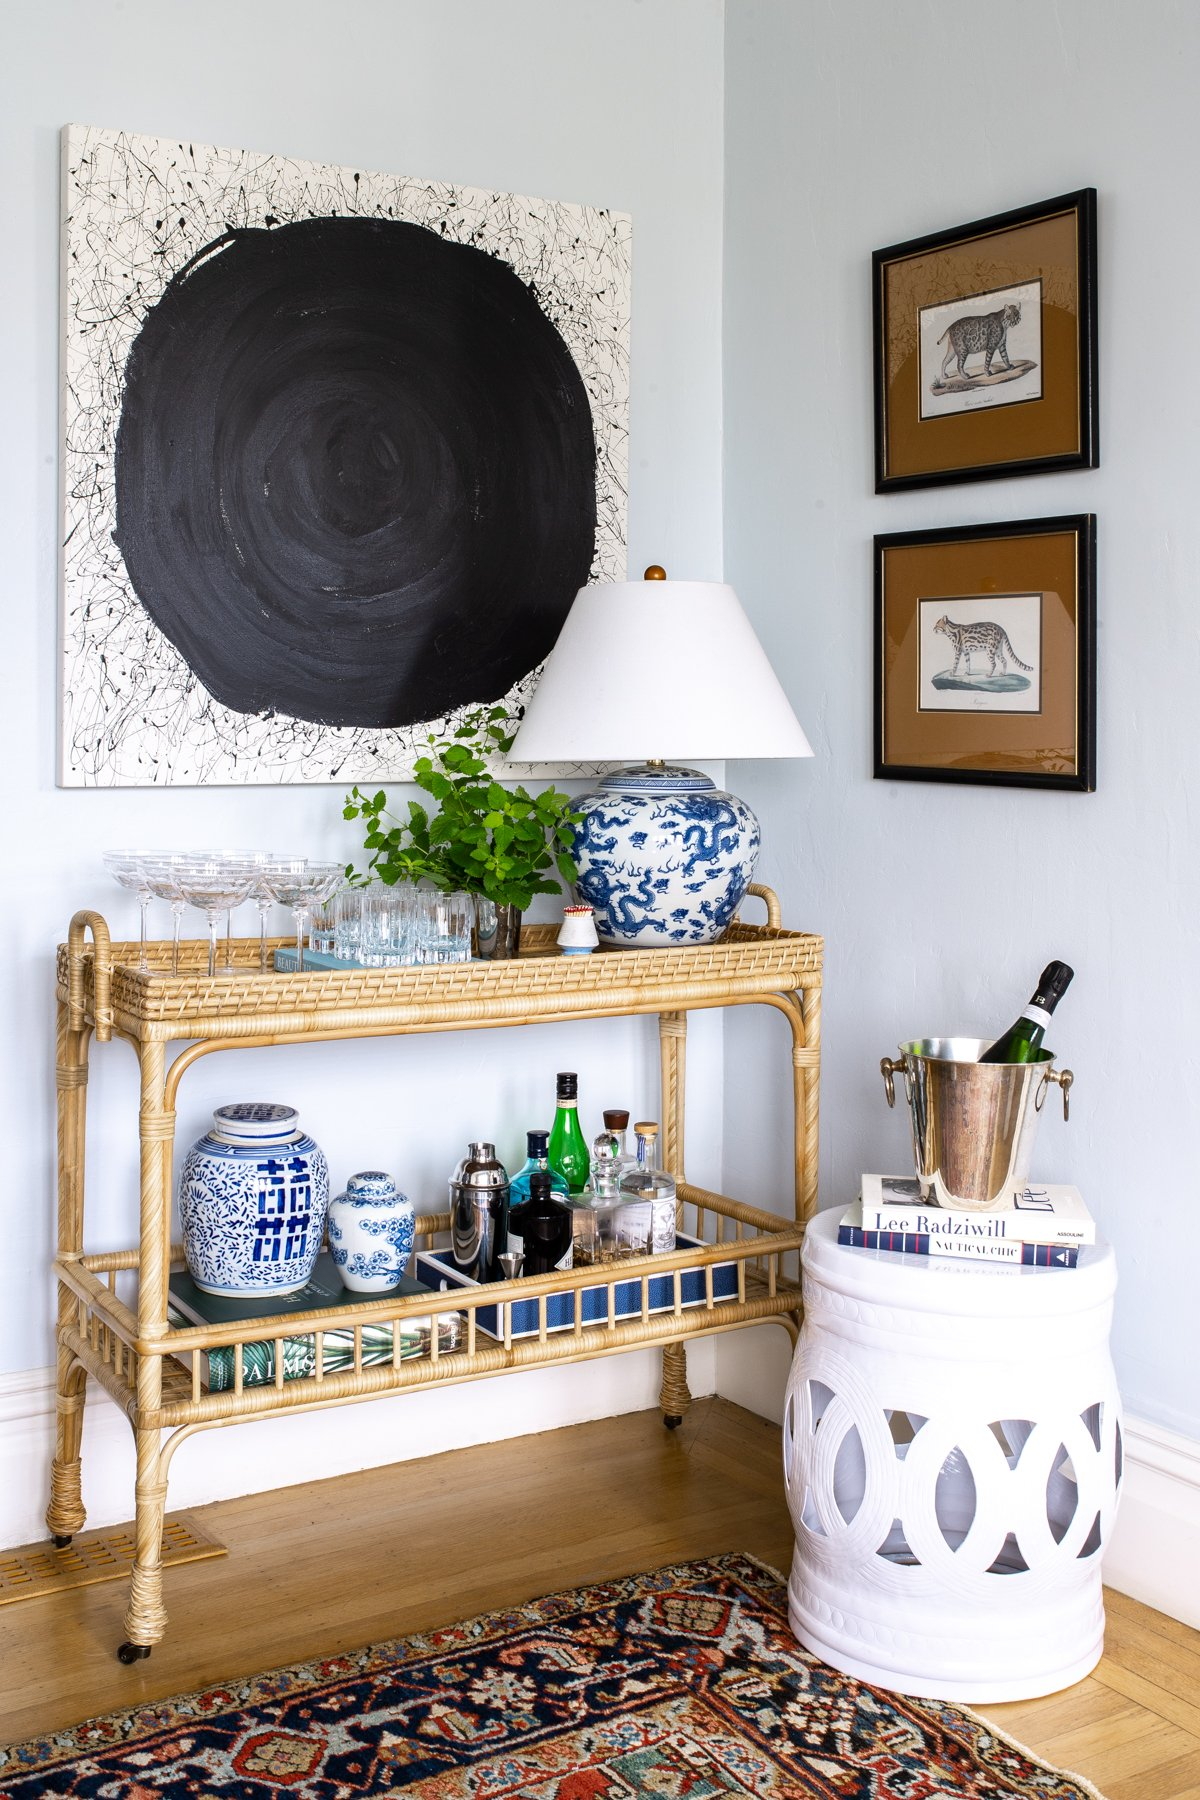 How to Style a Bar Cart Serena %26 Lily South Seas x Stacie Flinner-2.jpg